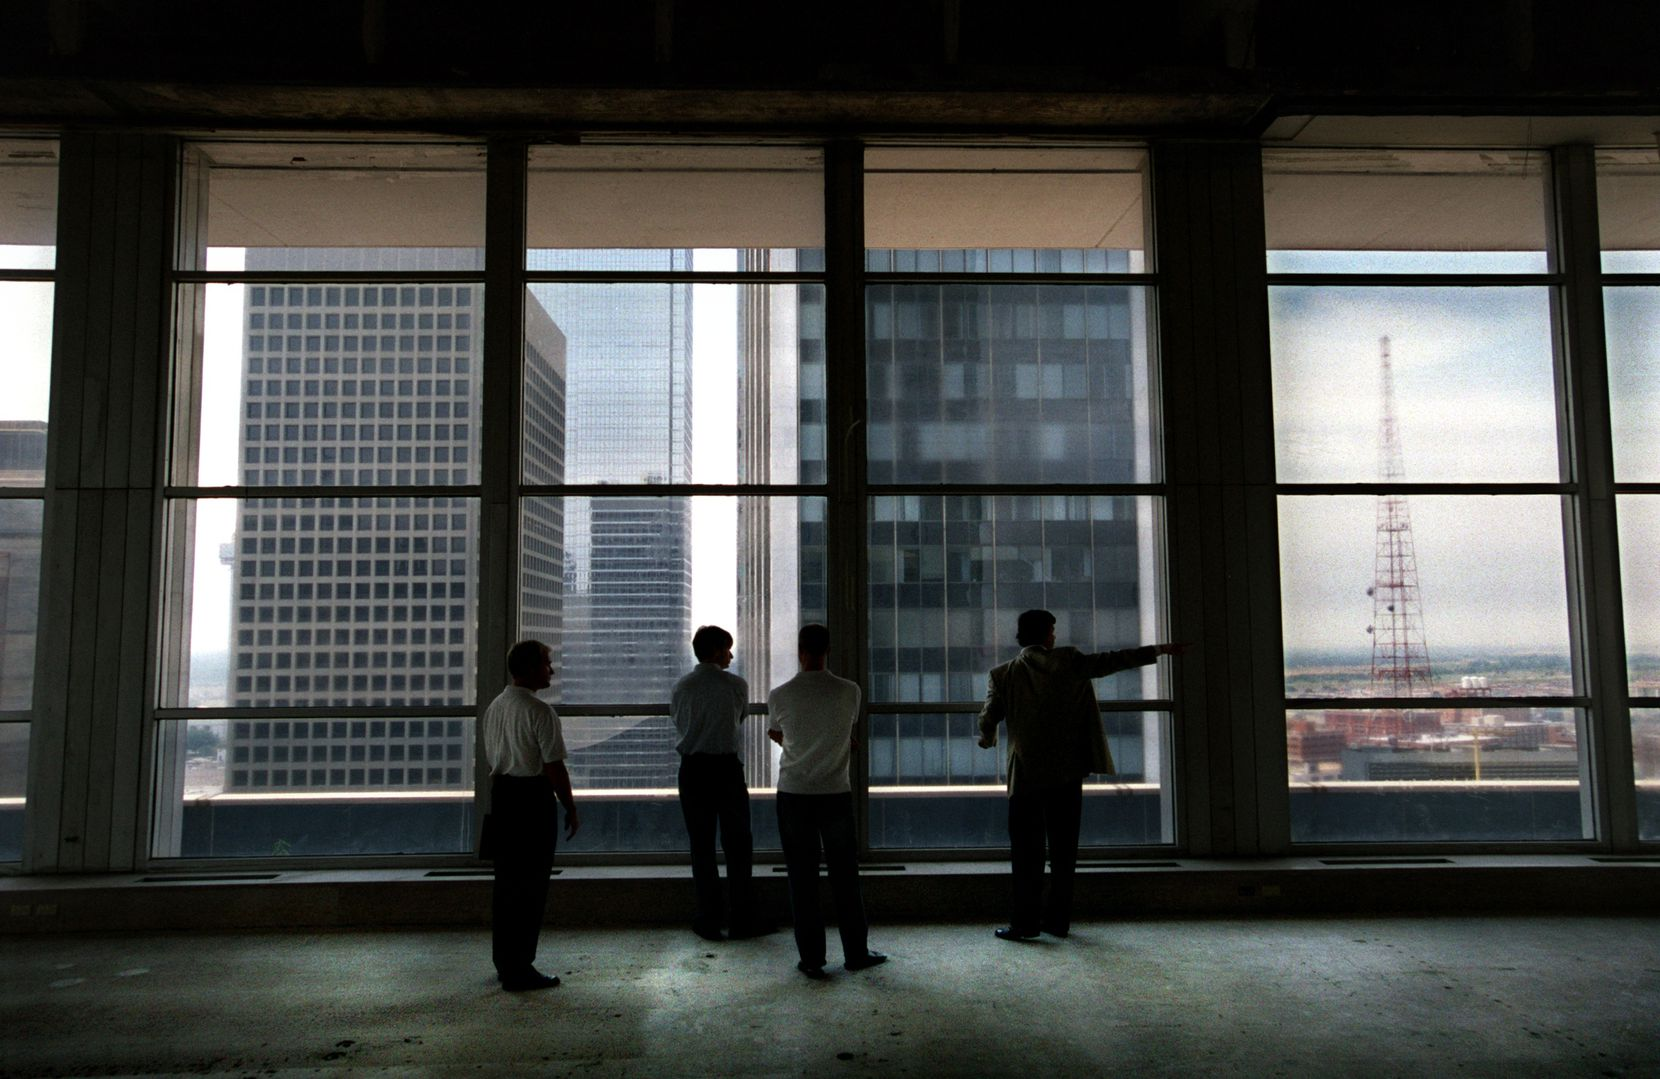 Vacant buildings and empty skyscrapers weren't uncommon in downtown Dallas in the early 2000s. A building boom transformed the city from a workday town into one that boasts 12,000 residents today.